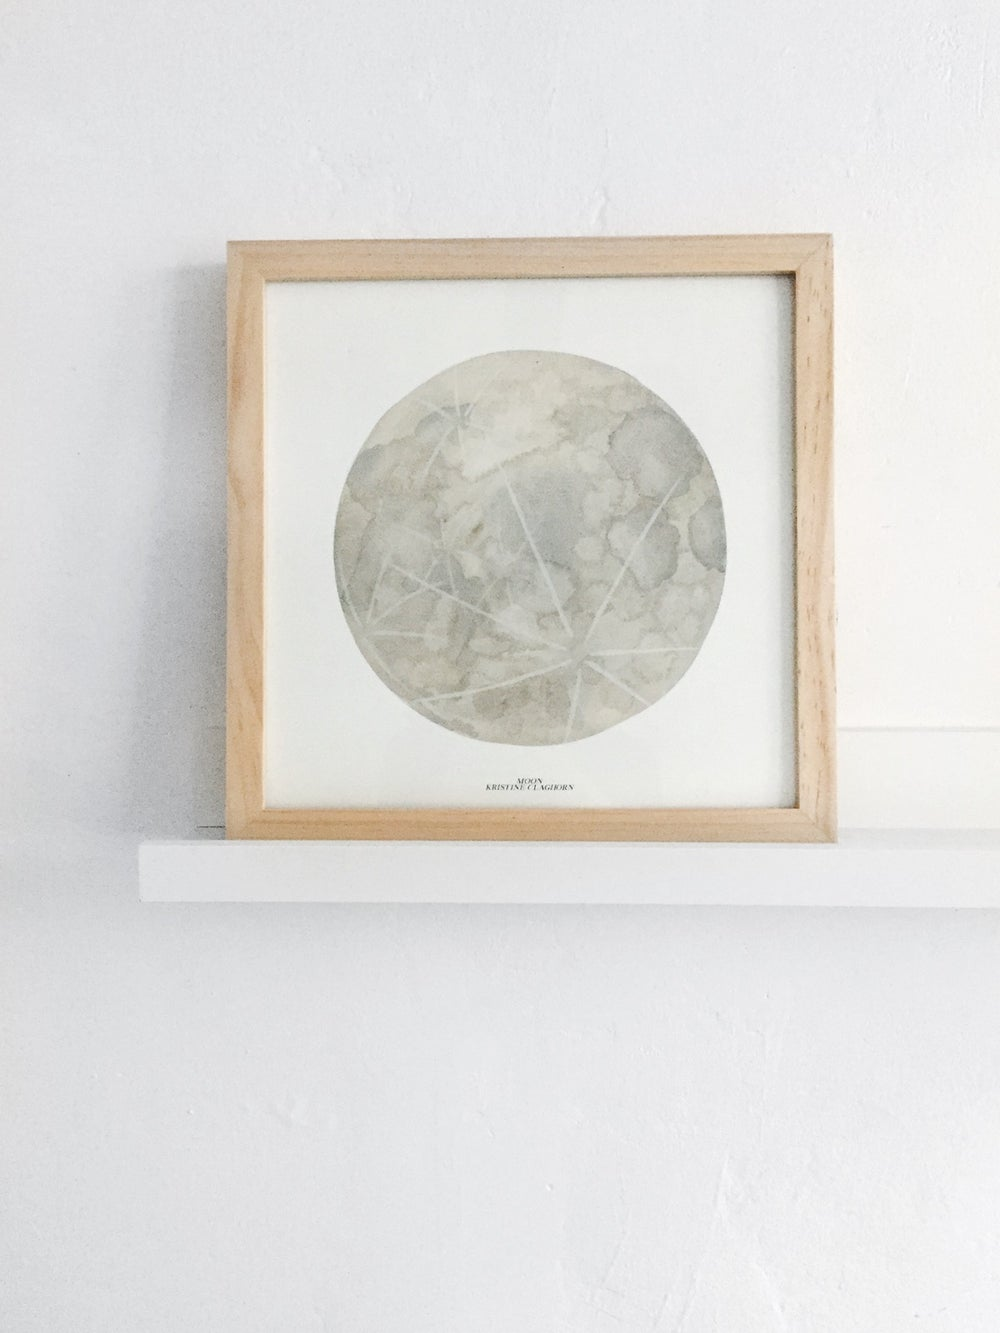 Image of Moon Print - 12 x 12